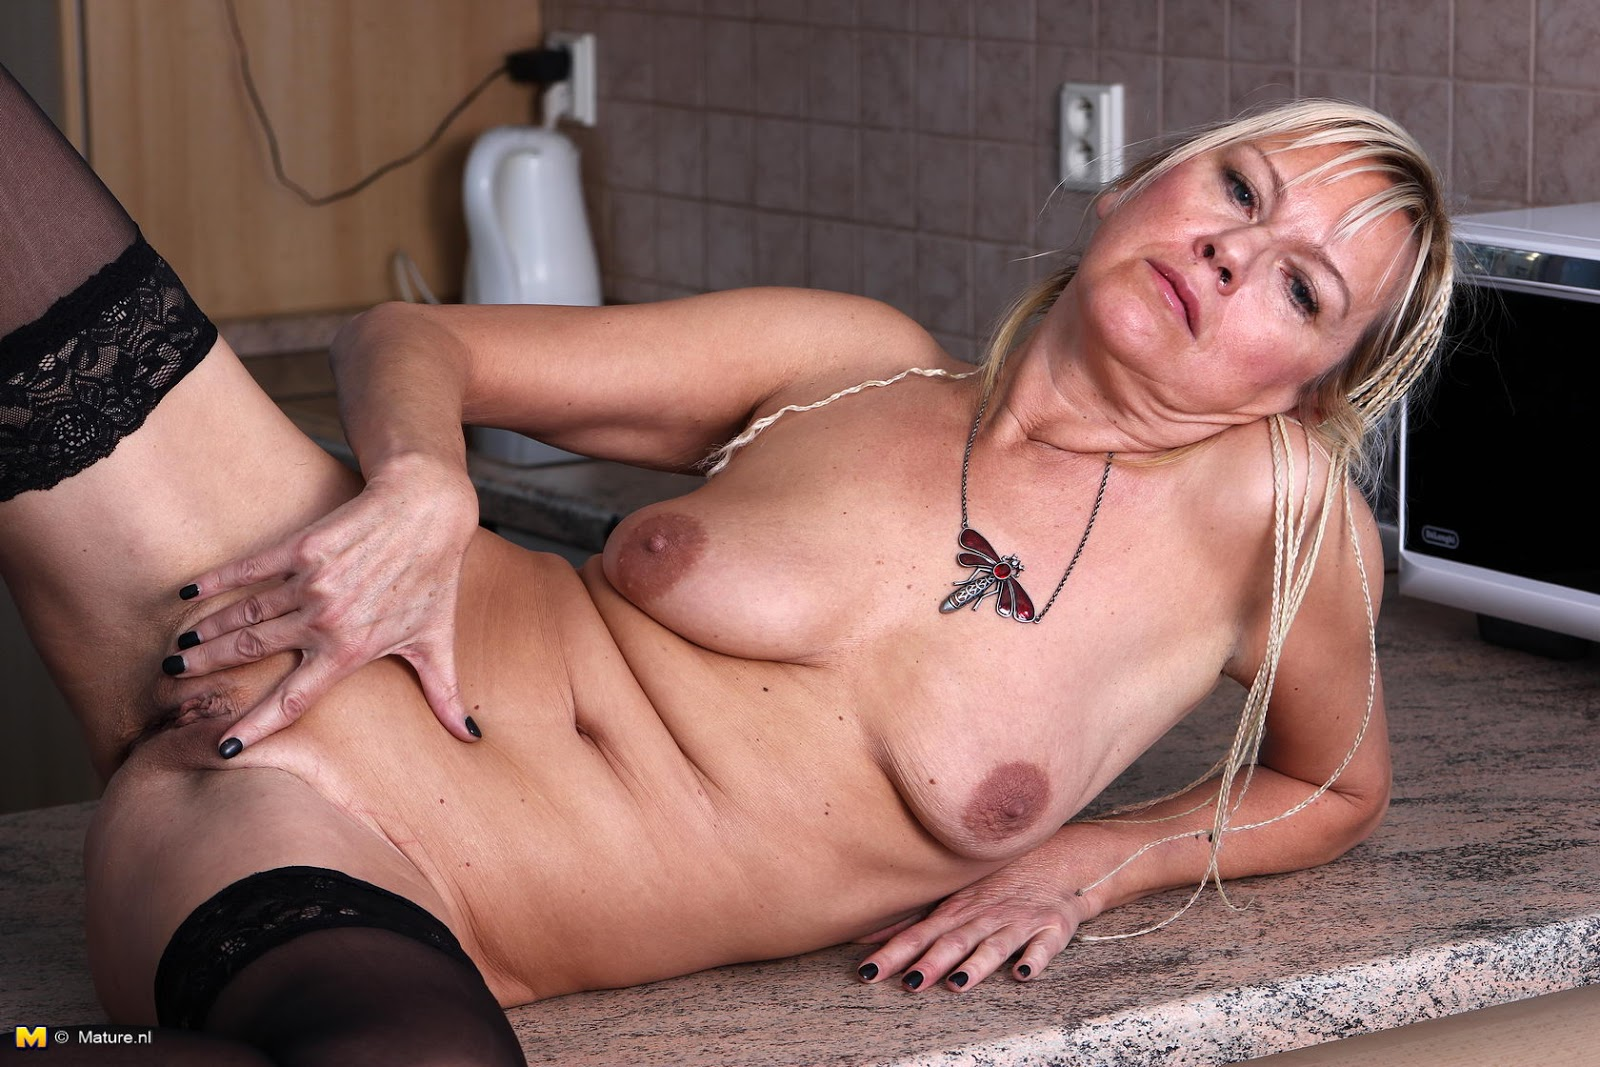 Older women wanking